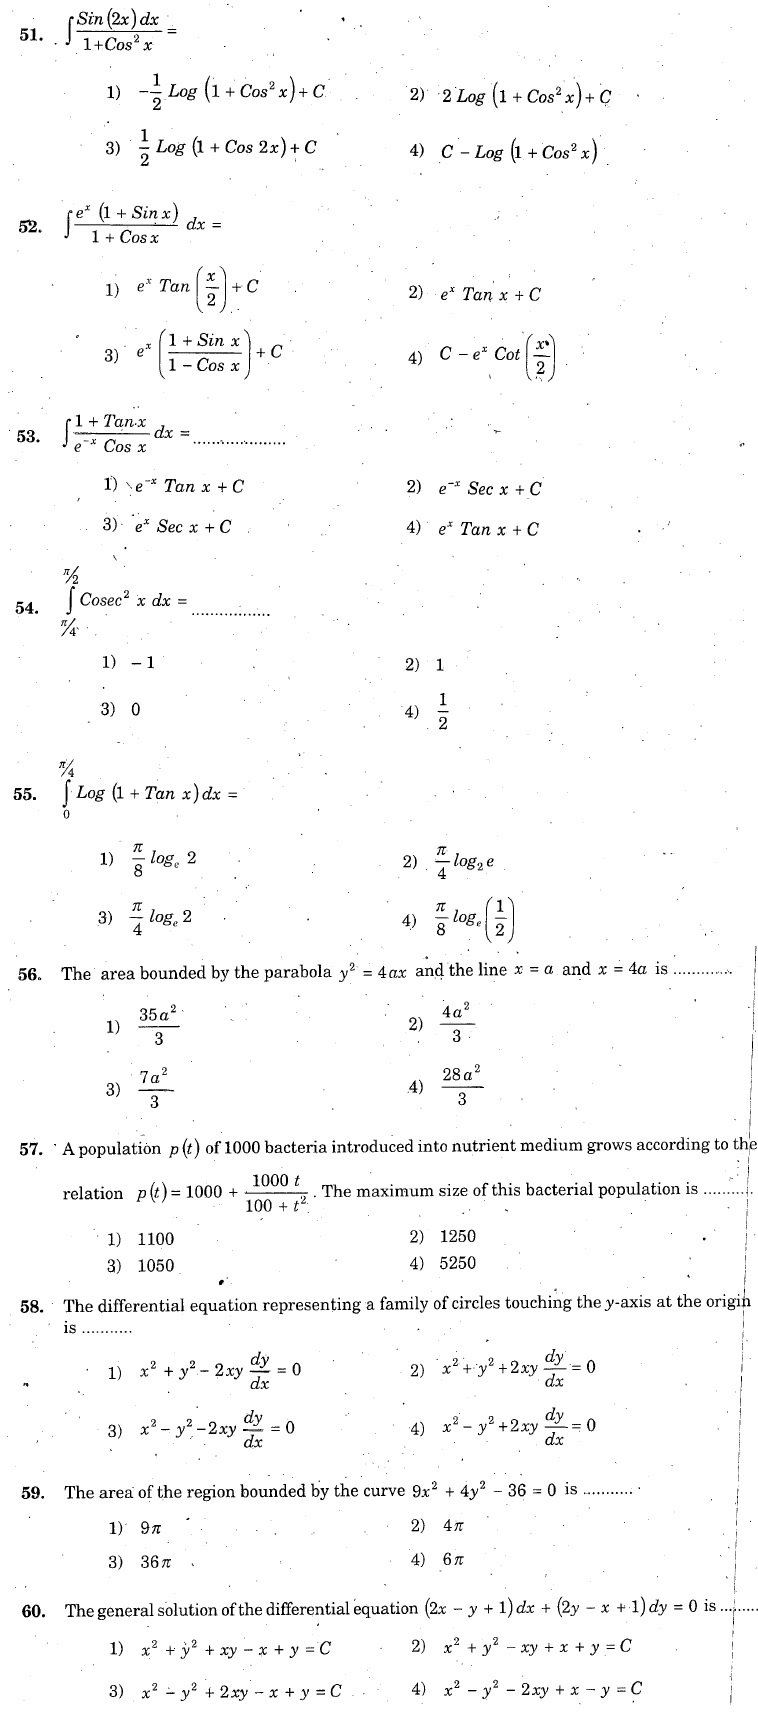 KCET 2005 Question Paper - Maths